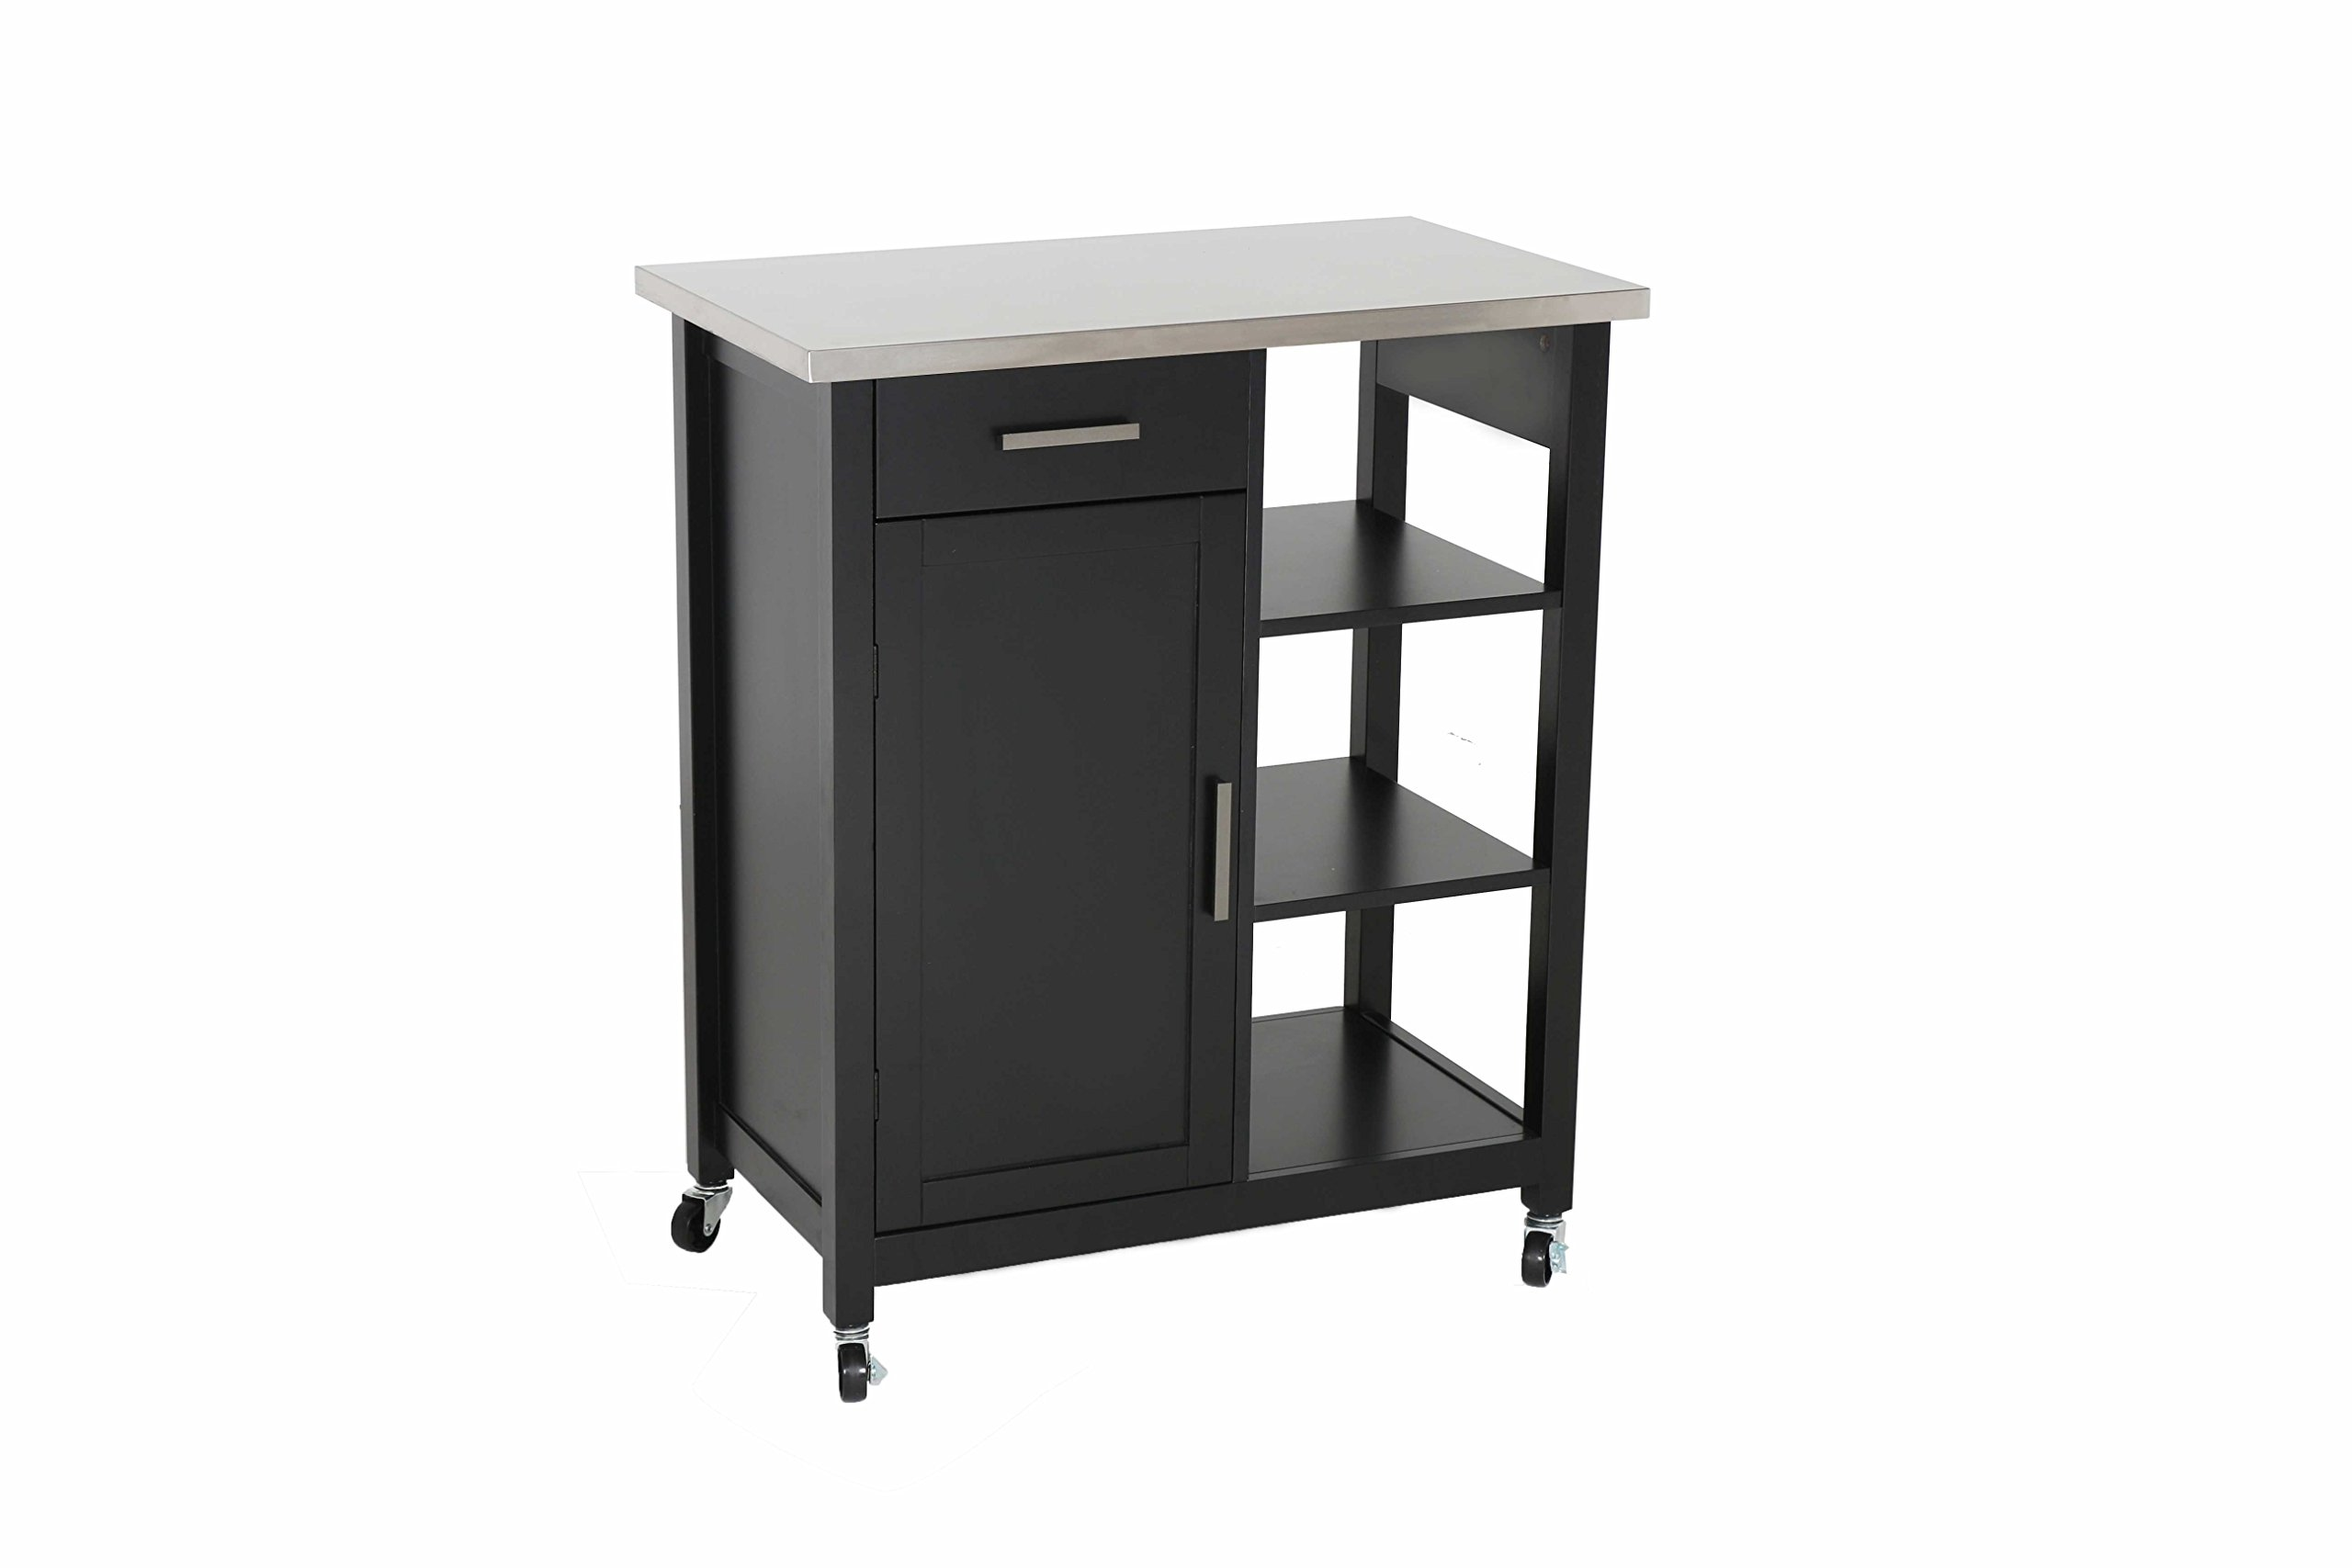 LIFE Home Oliver and Smith - Nashville Collection - Mobile Kitchen Island Cart on Wheels - Black - Stainless Steel Top - 32'' W x 17'' L x 36'' H 102117-01blk